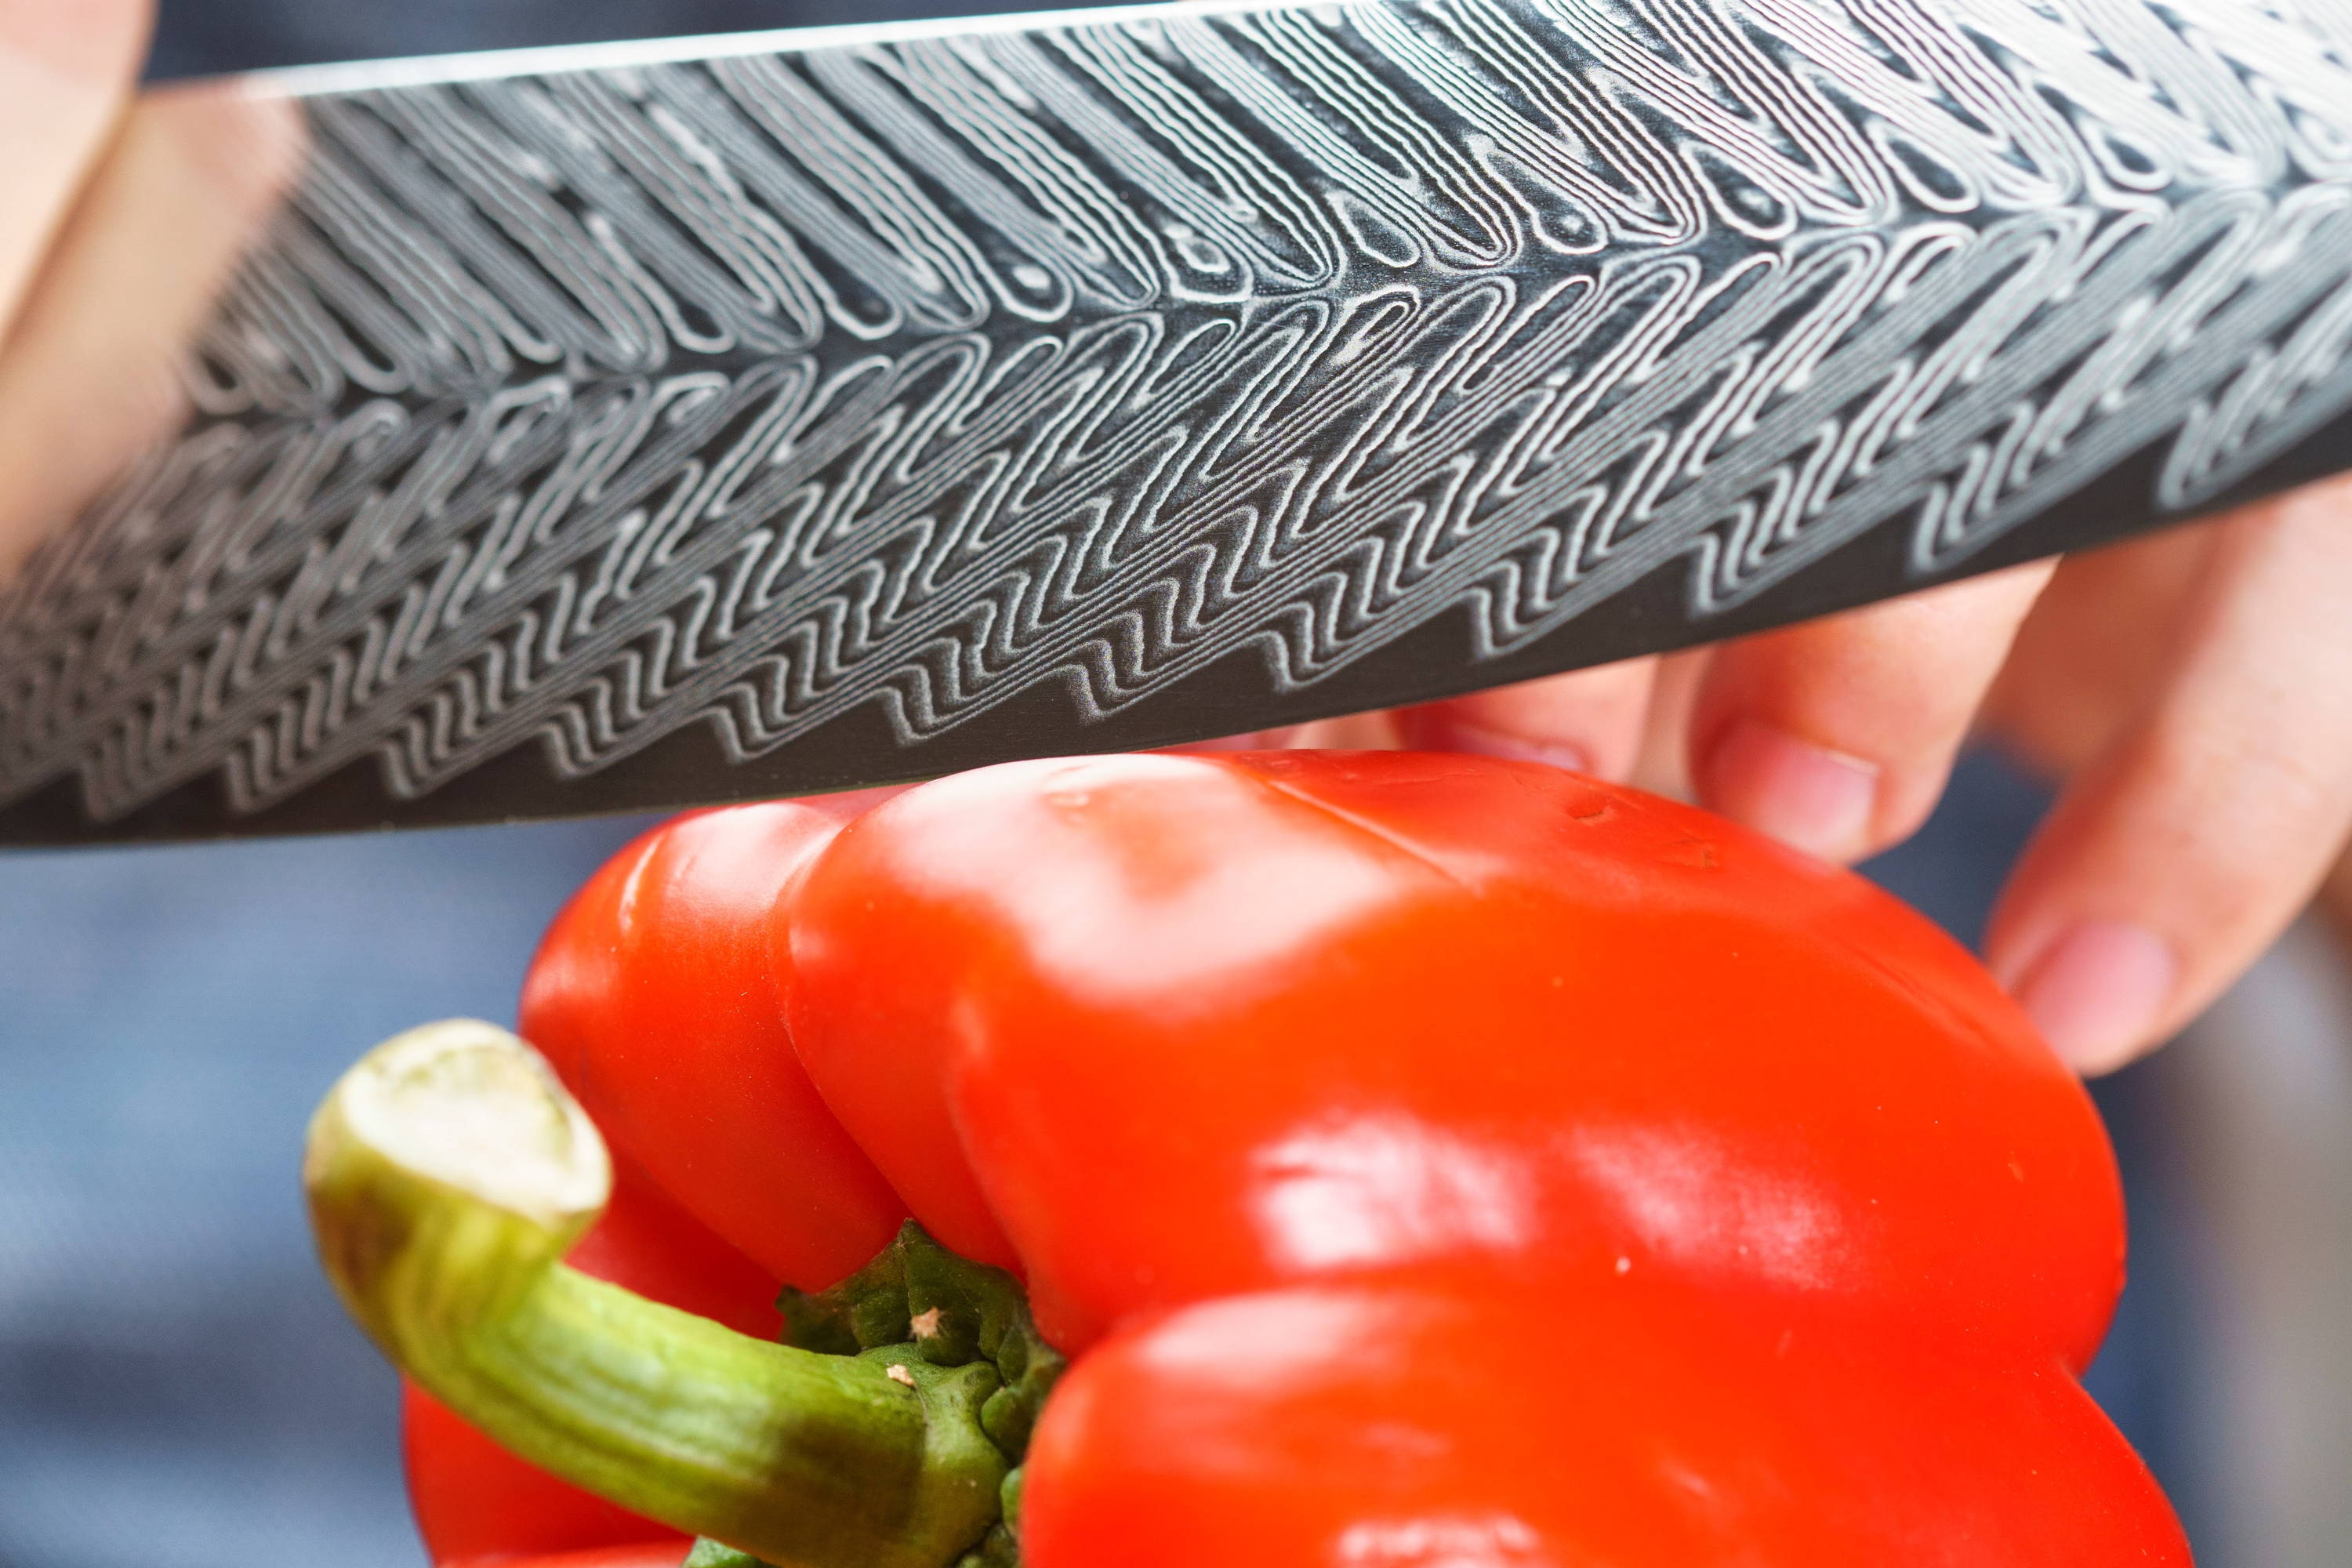 Chef Knife Cutting Pepers